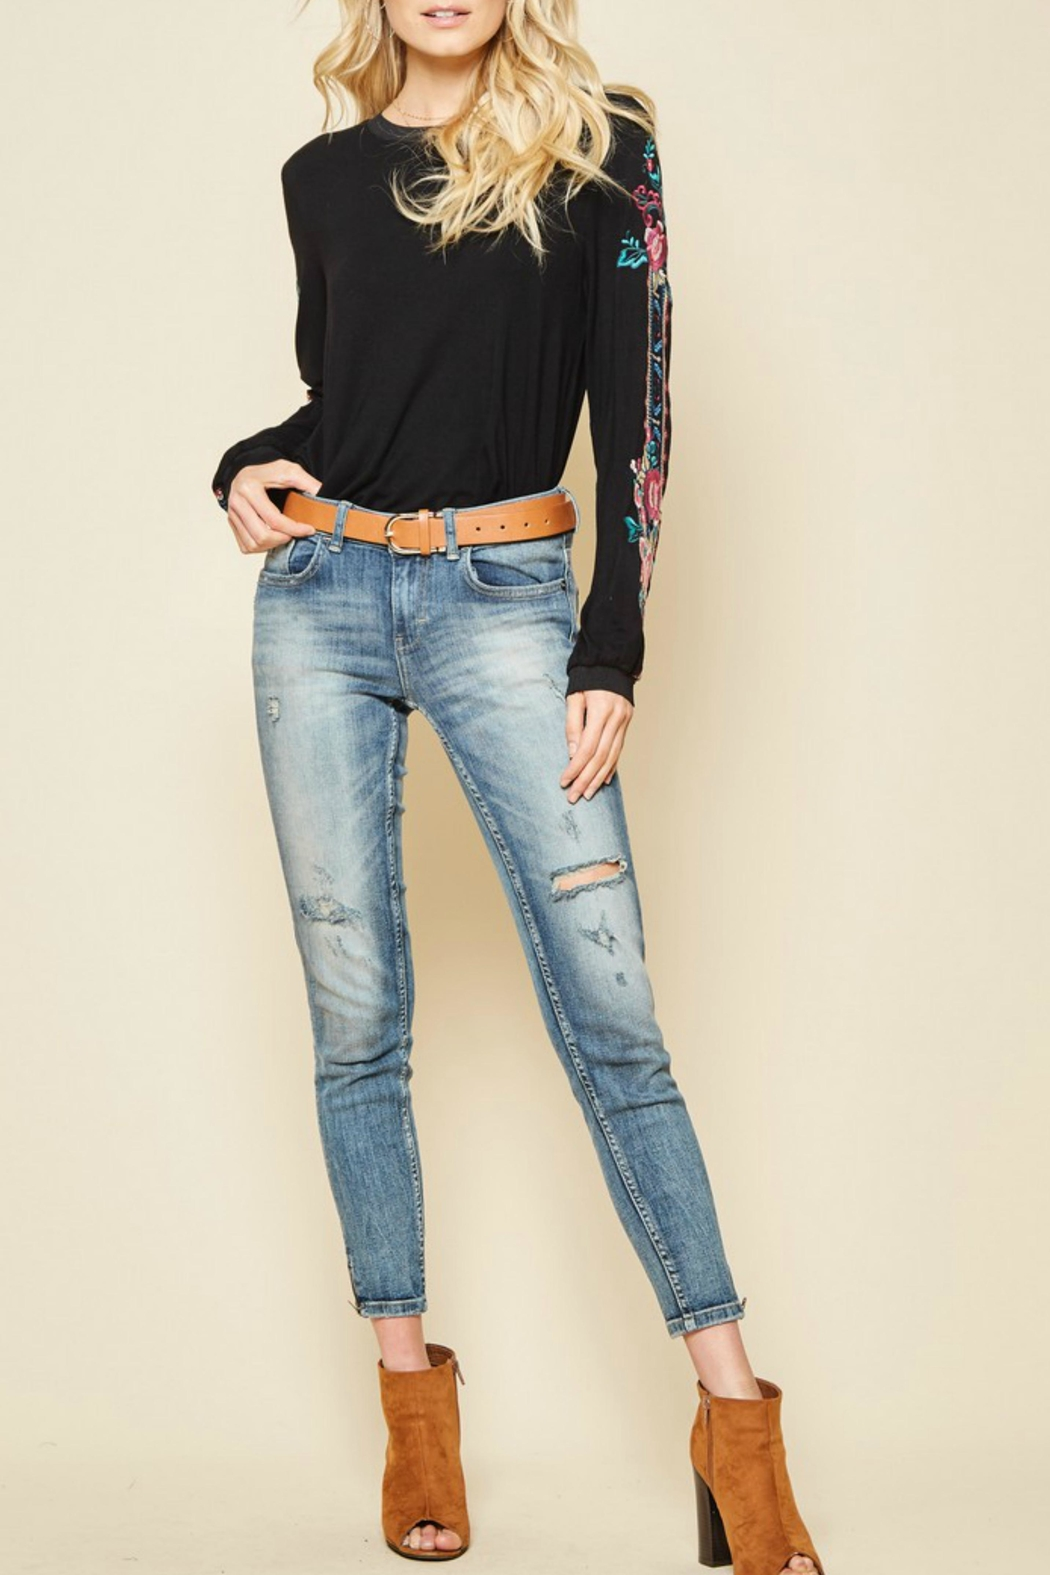 Andree by Unit Embroidered Sleeved Top - Side Cropped Image